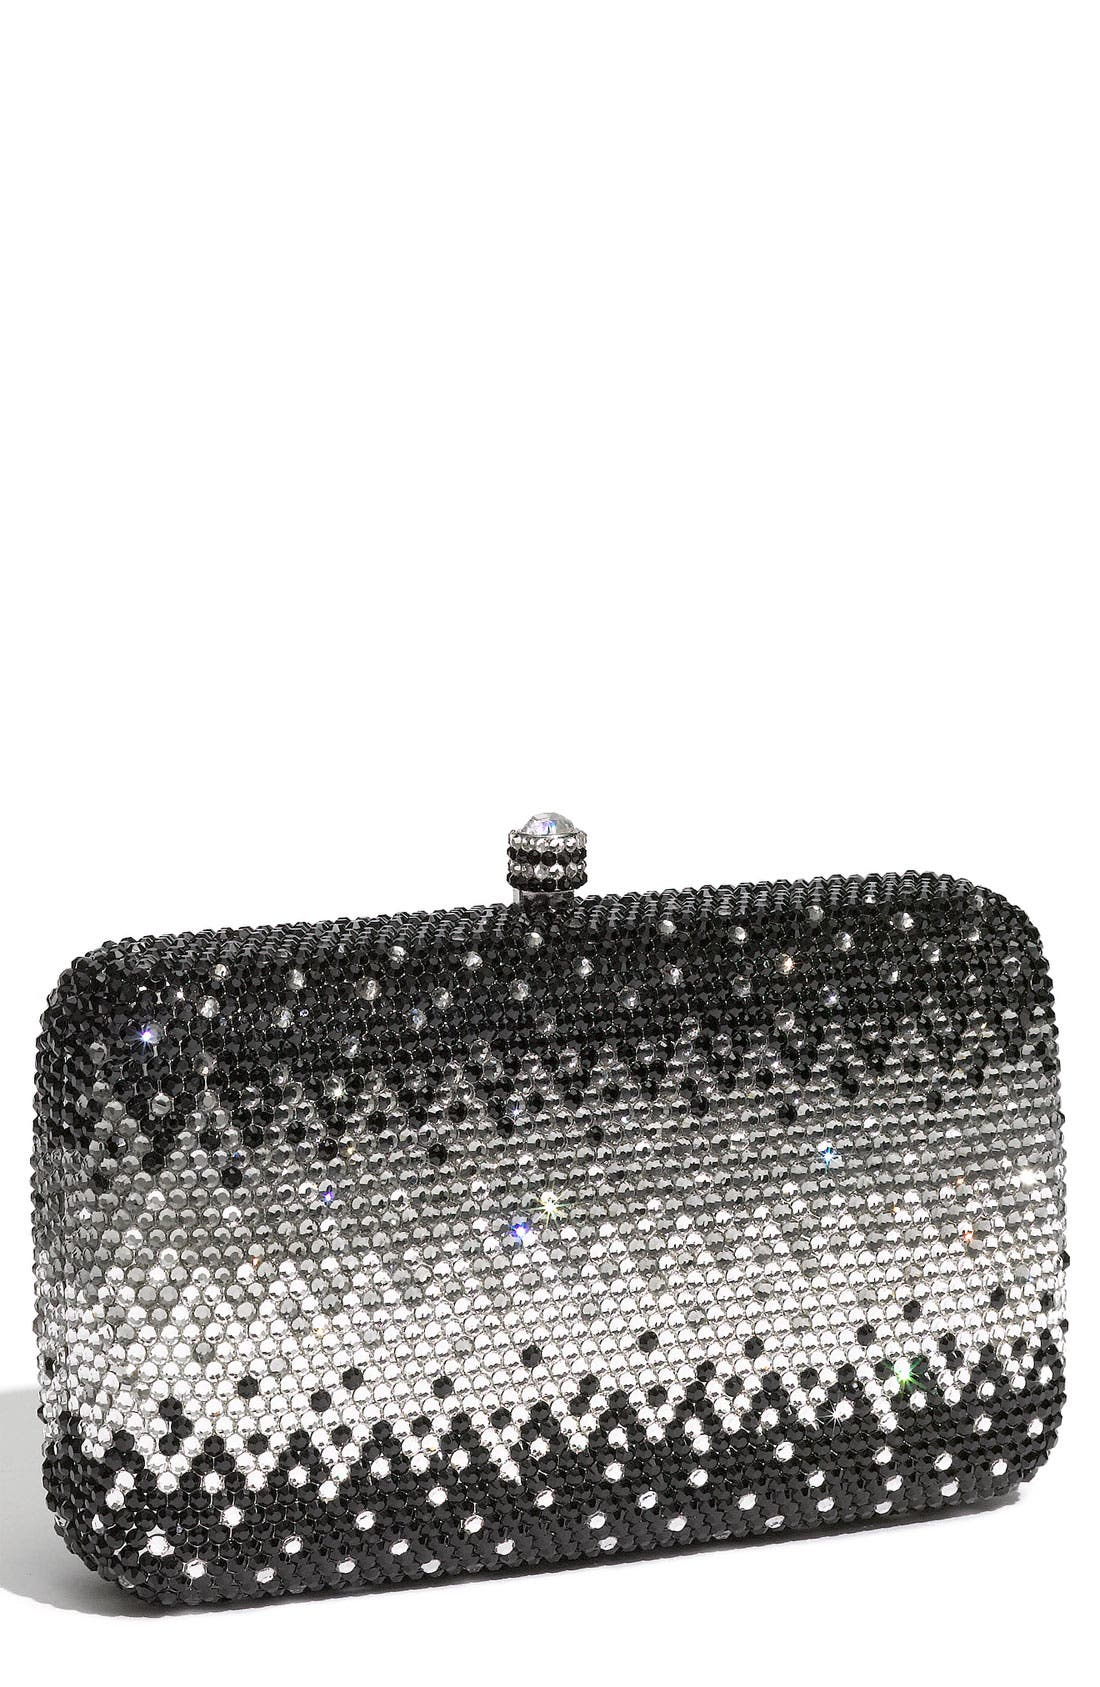 Main Image - Natasha Couture Rhinestone Box Clutch